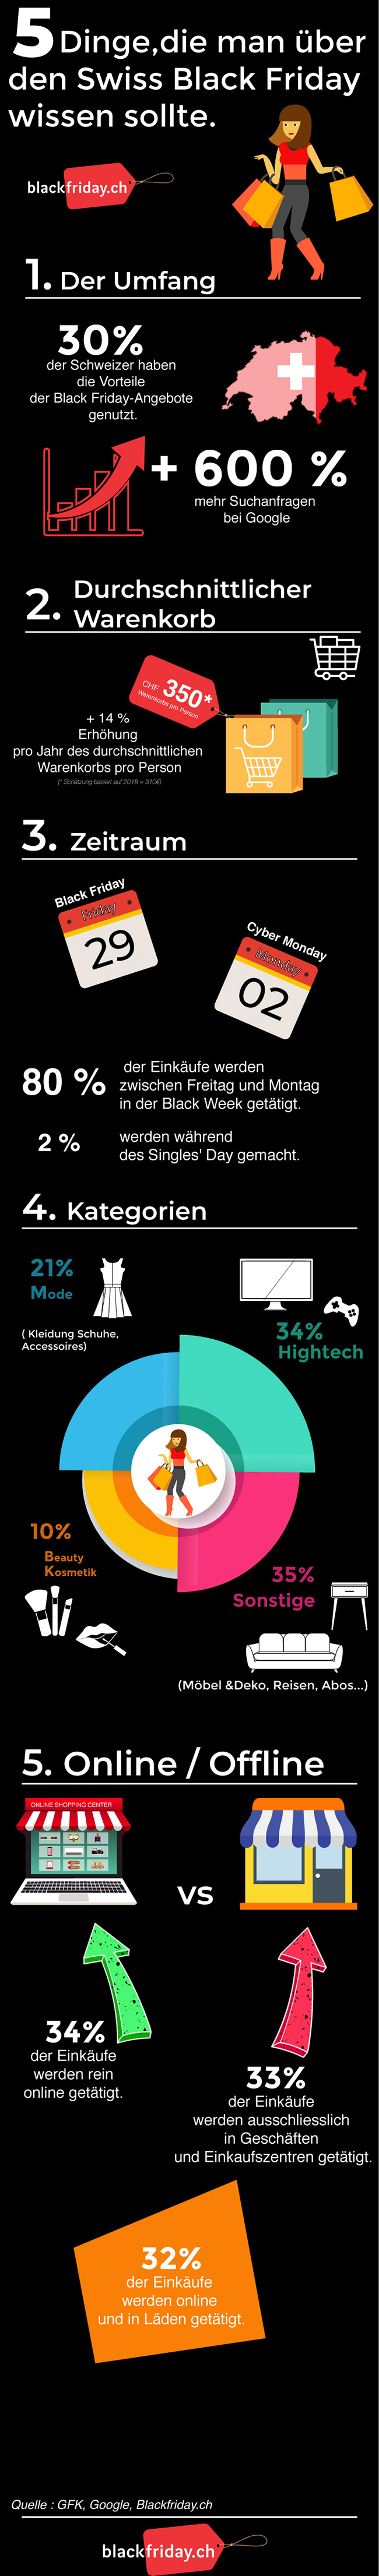 Black Friday Schweiz infografik